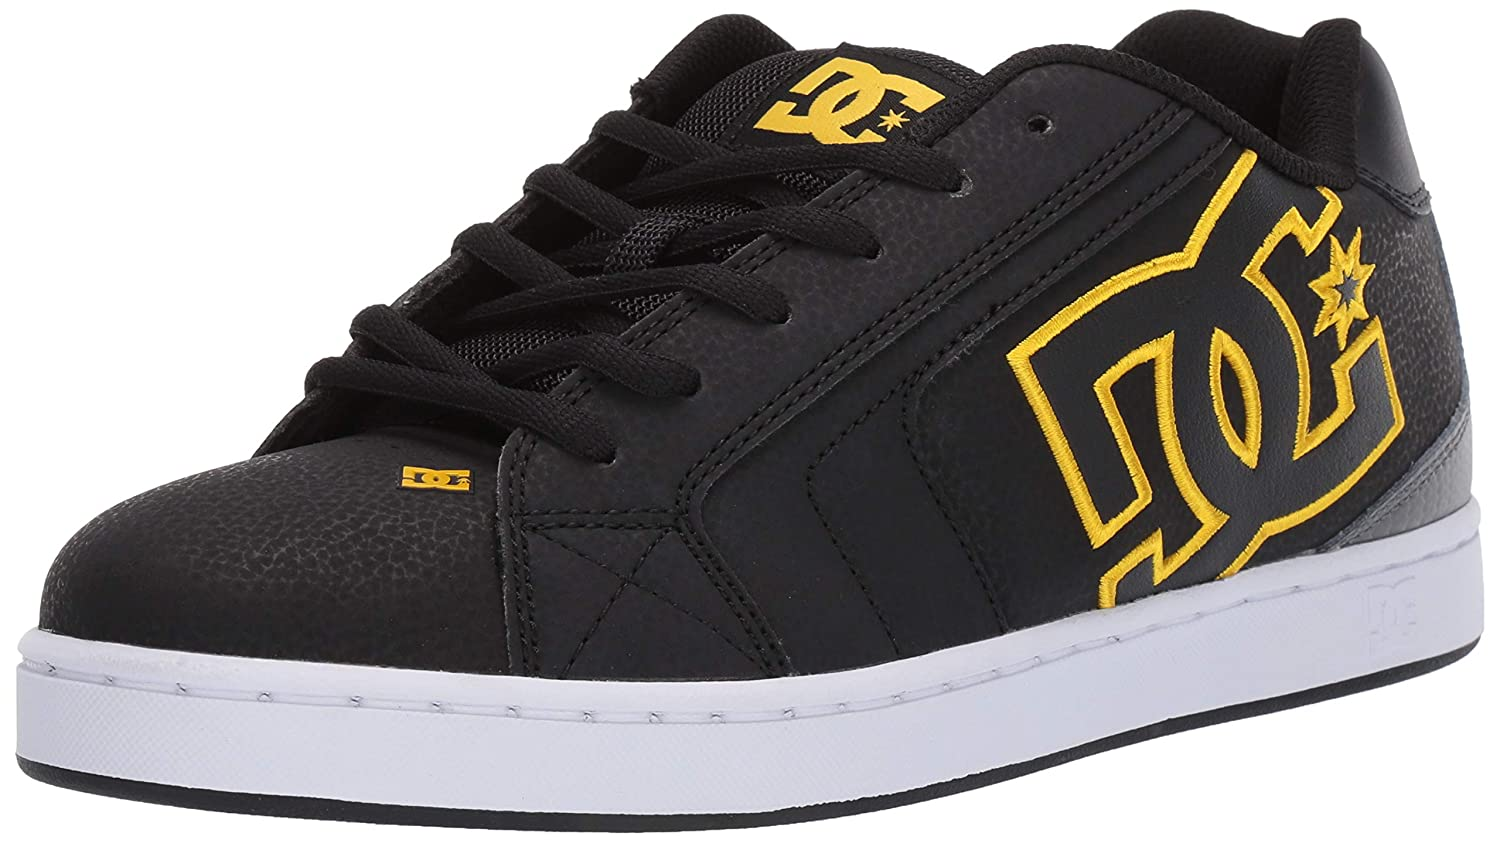 Noir Or DC chaussures Net chaussures, Chaussures basses homme